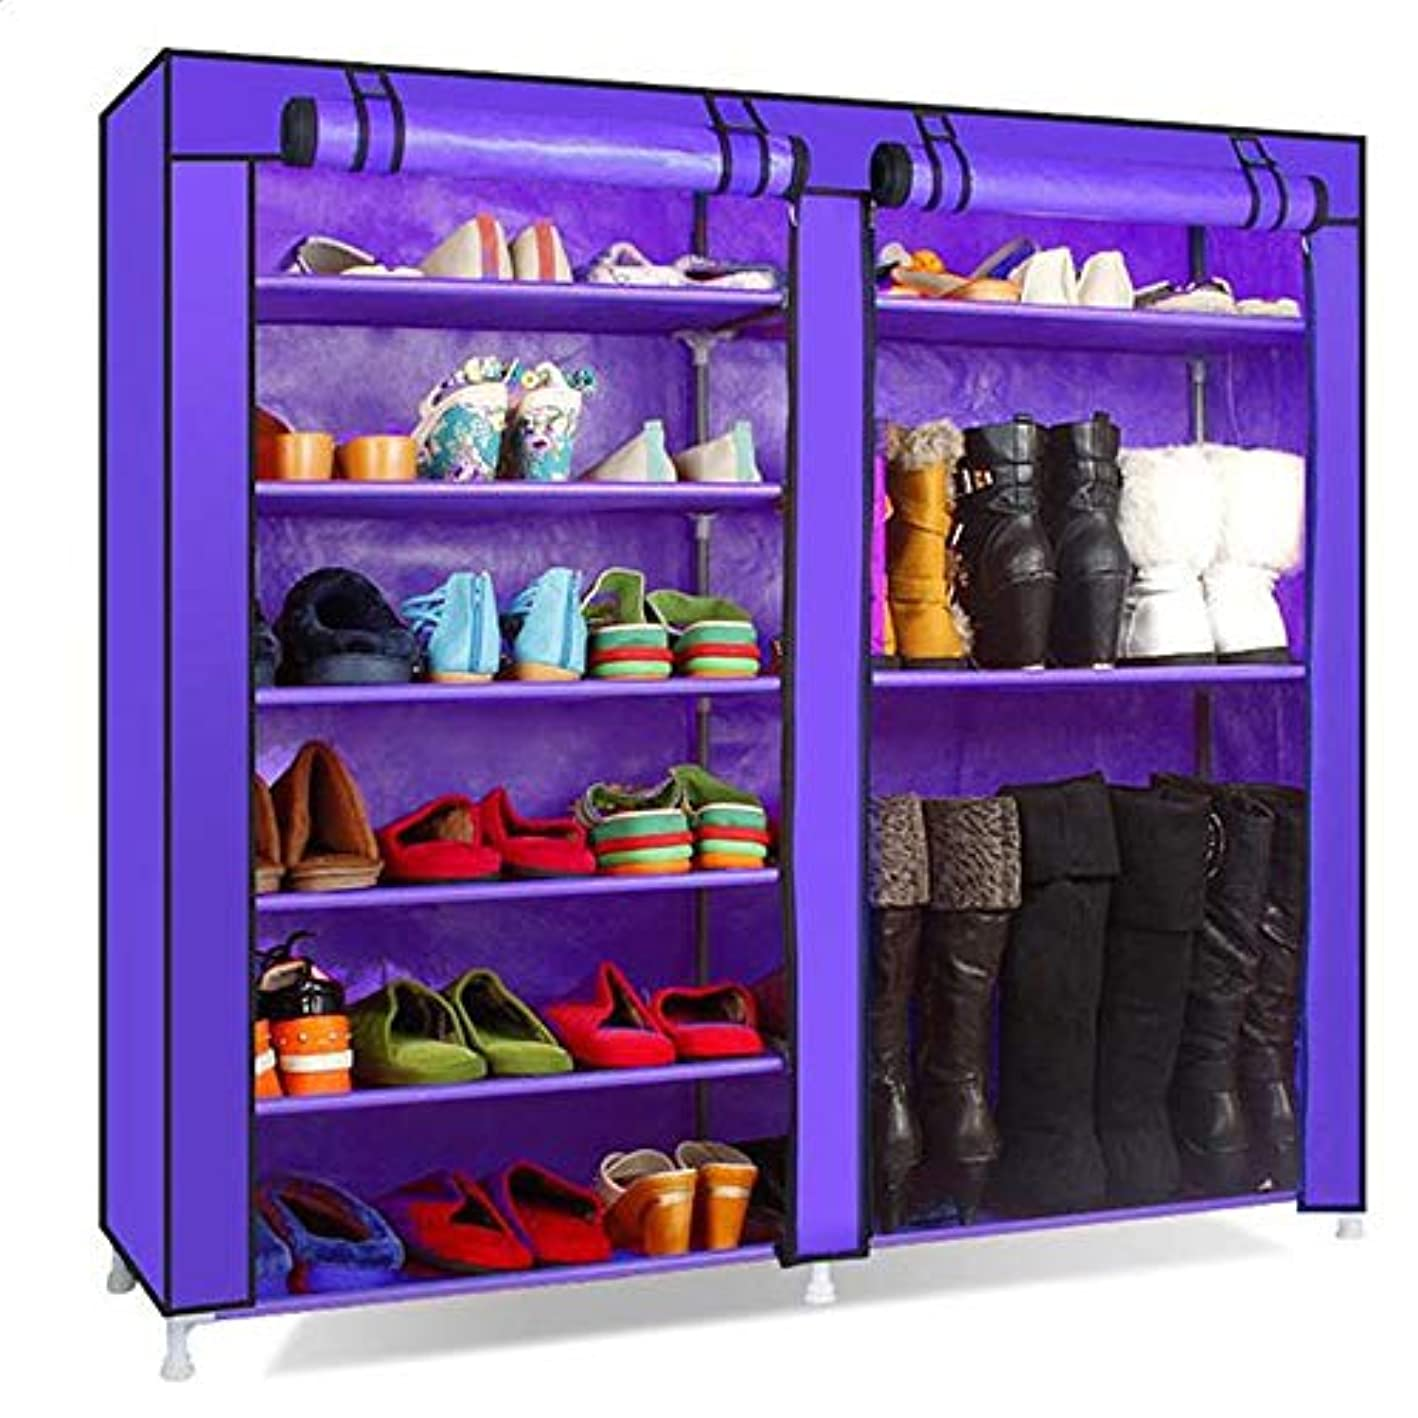 YYAO Shoe Rack Combination Style Double Rows 9 Lattices Storage Organizer Shoe Cabinet Closet Stackable Shelf Tower with Non-Woven Fabric Cover,Purple